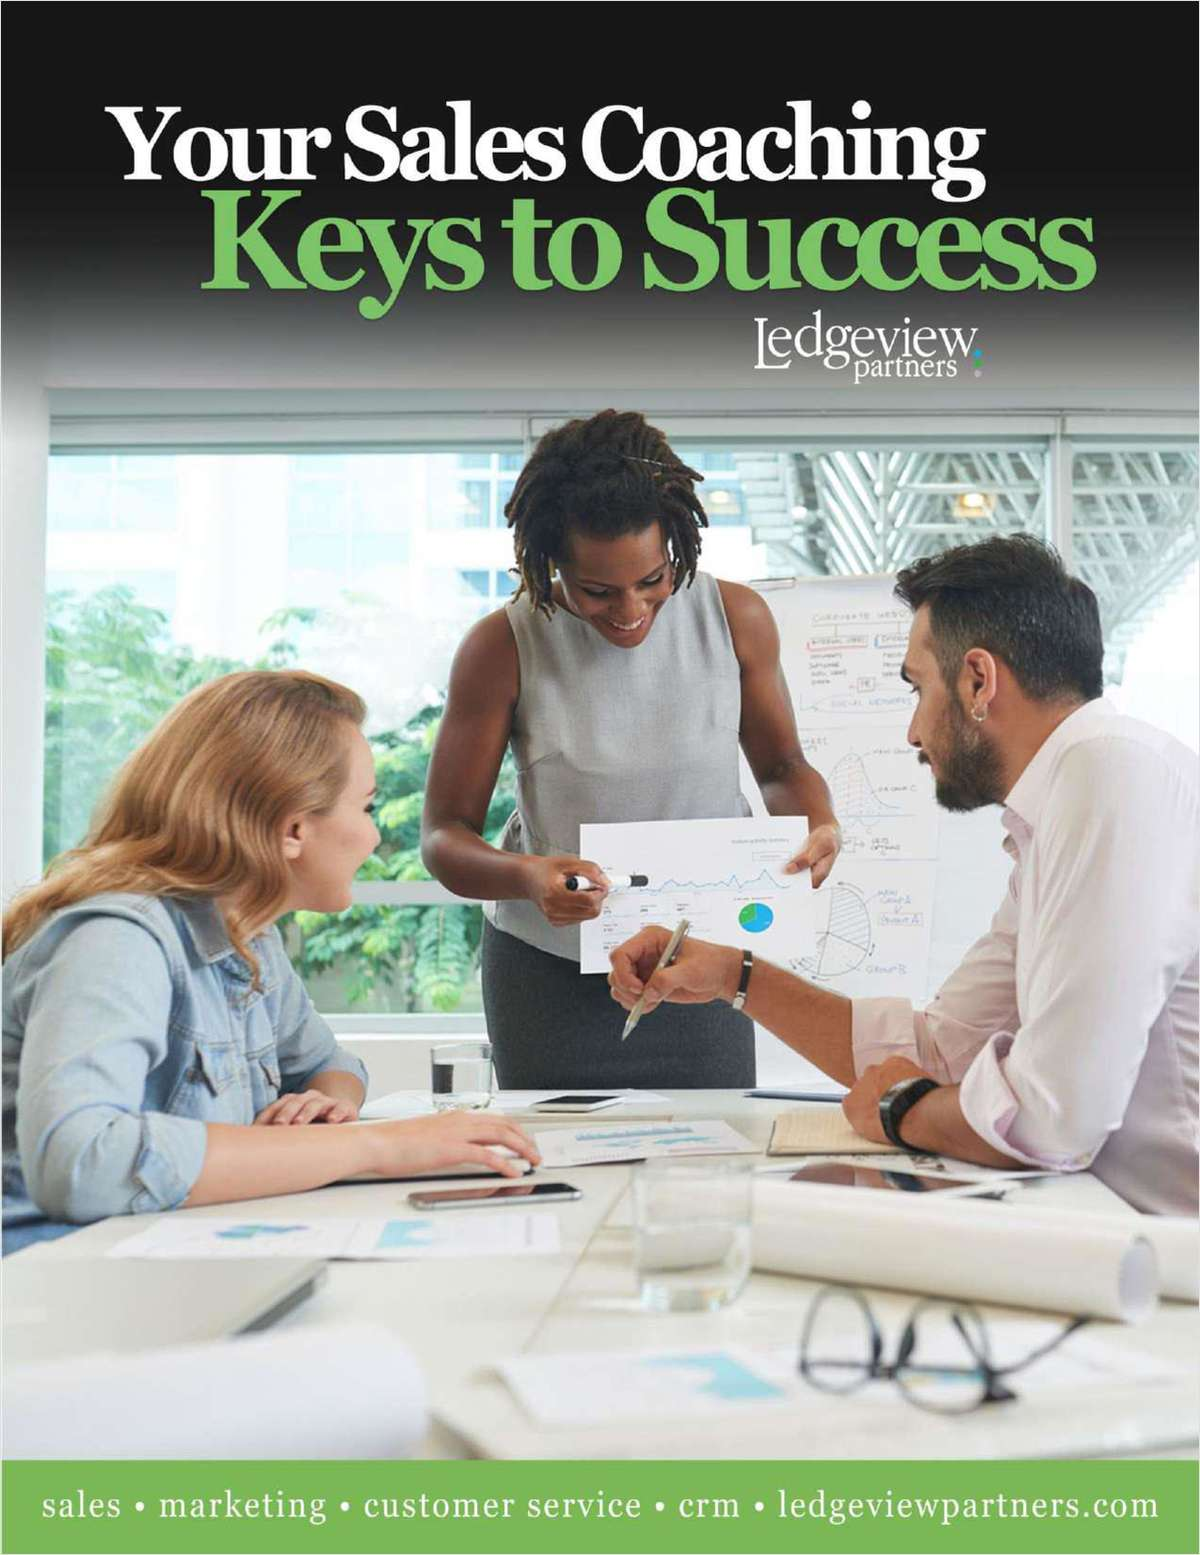 Your Sales Coaching Keys to Success